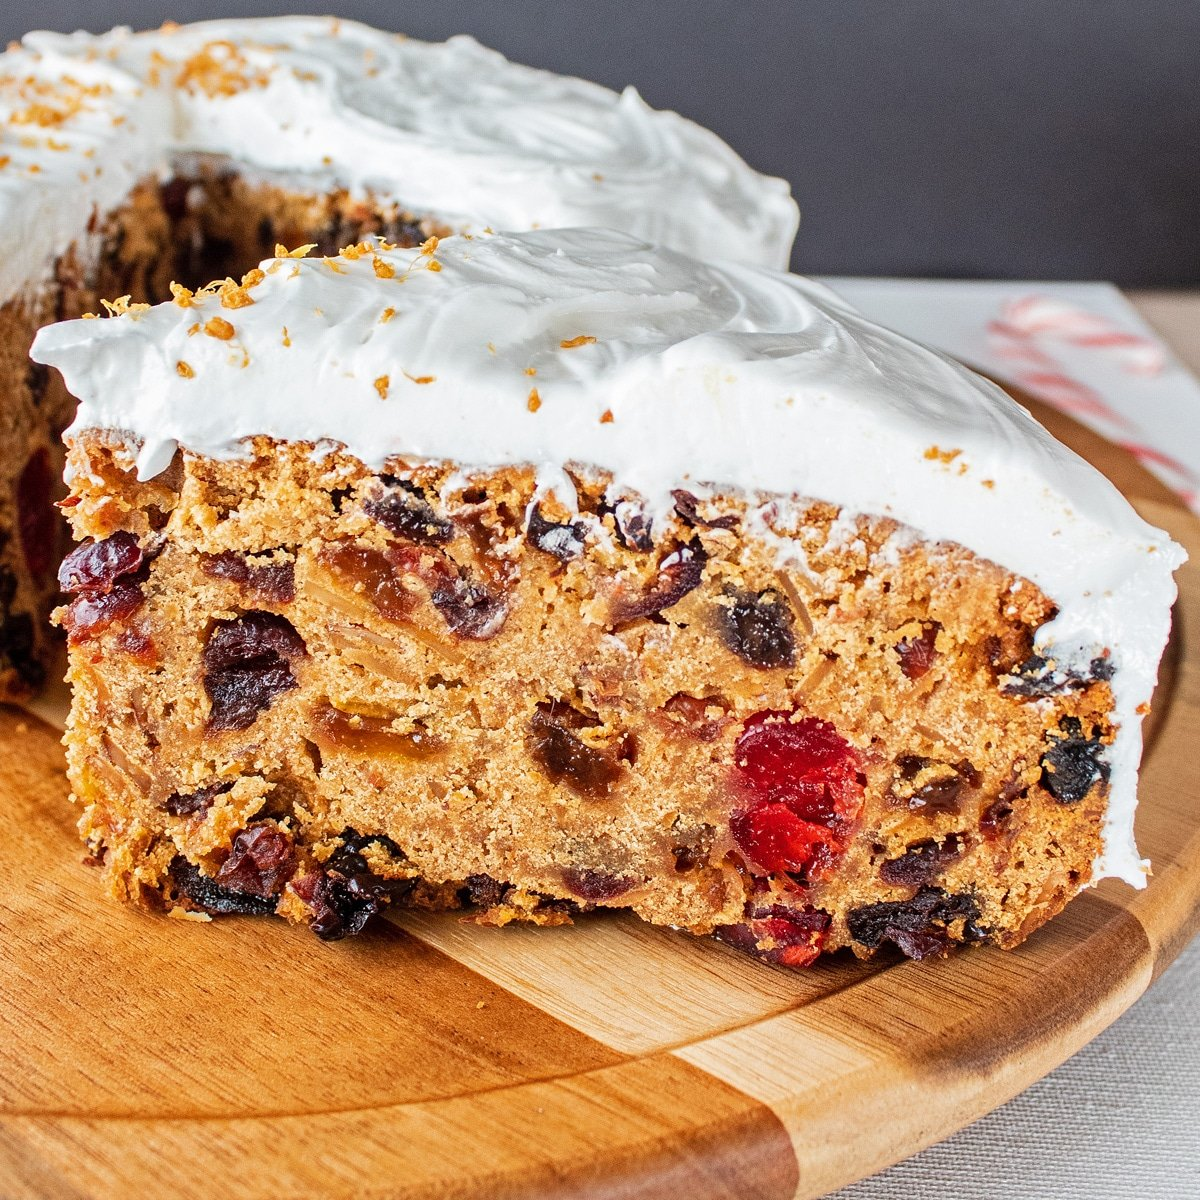 Christmas cake sliced and served on white plate.